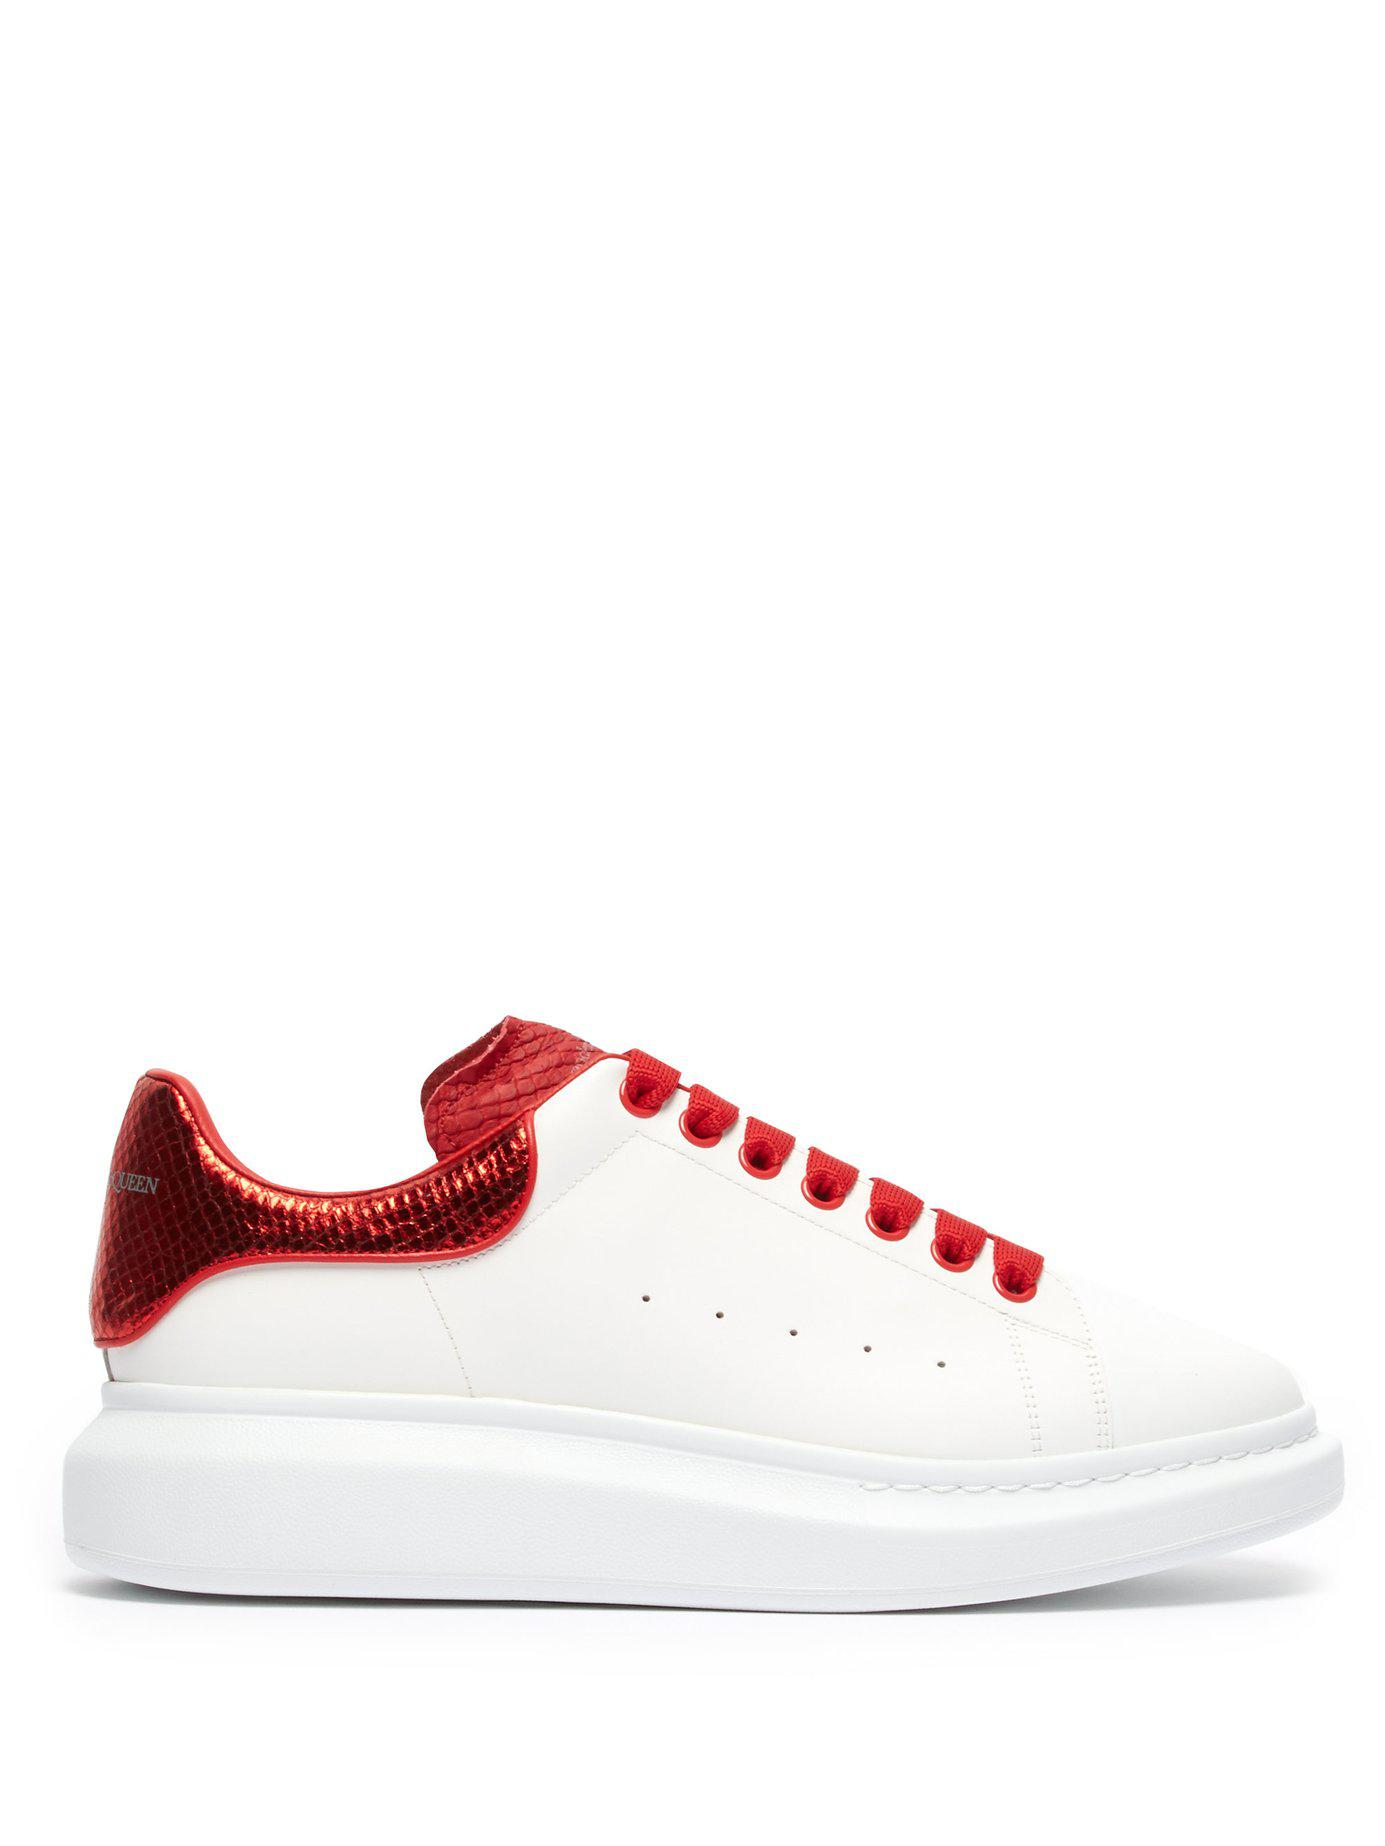 aa85e74853da3 Lyst - Alexander McQueen Raised Sole Low Top Leather Trainers in Red ...